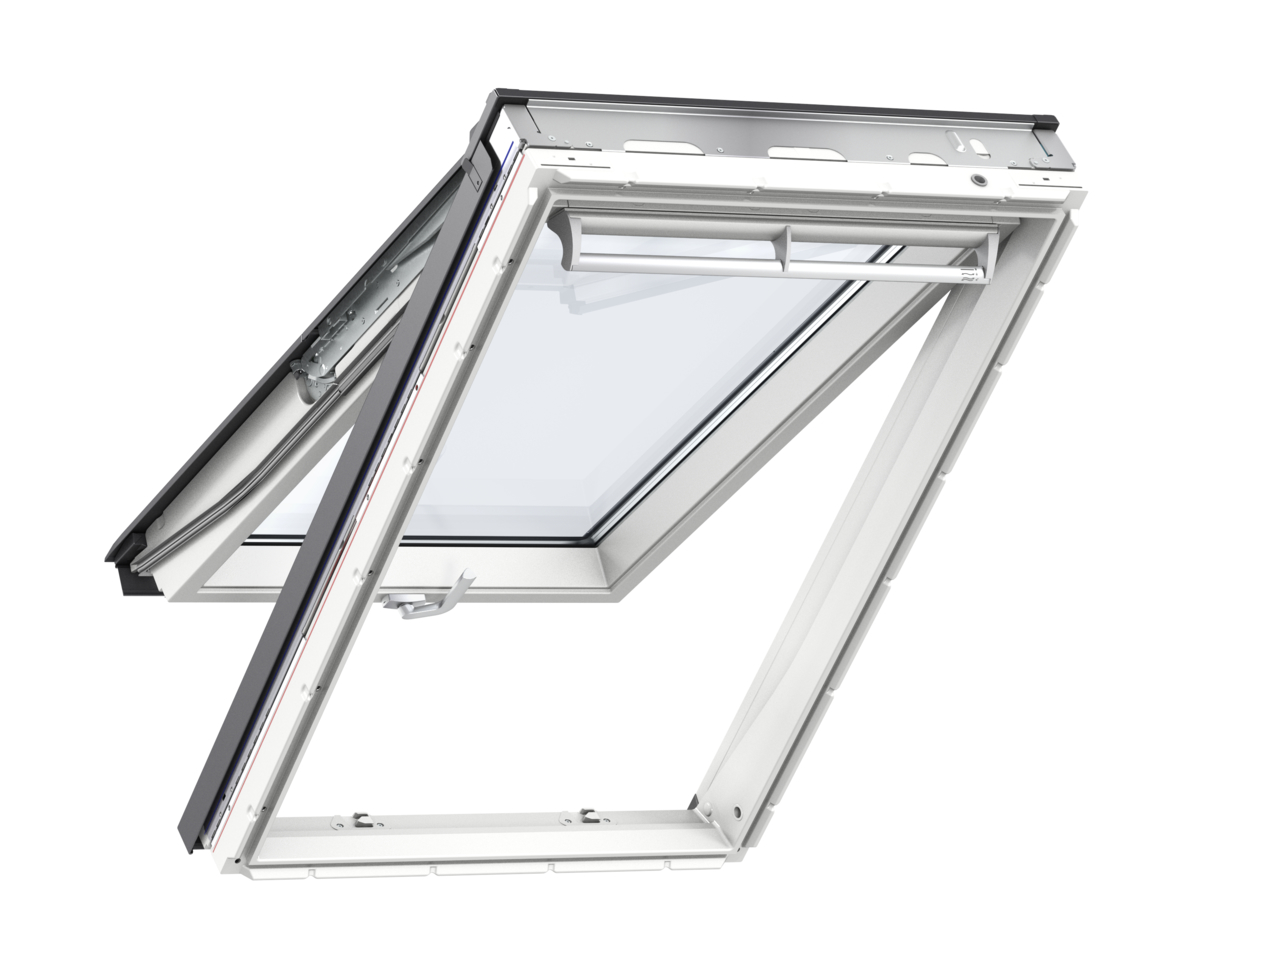 Velux GPU CK06 550 x 1180mm Top Hung 66Pane Roof Window - White Polyurethane